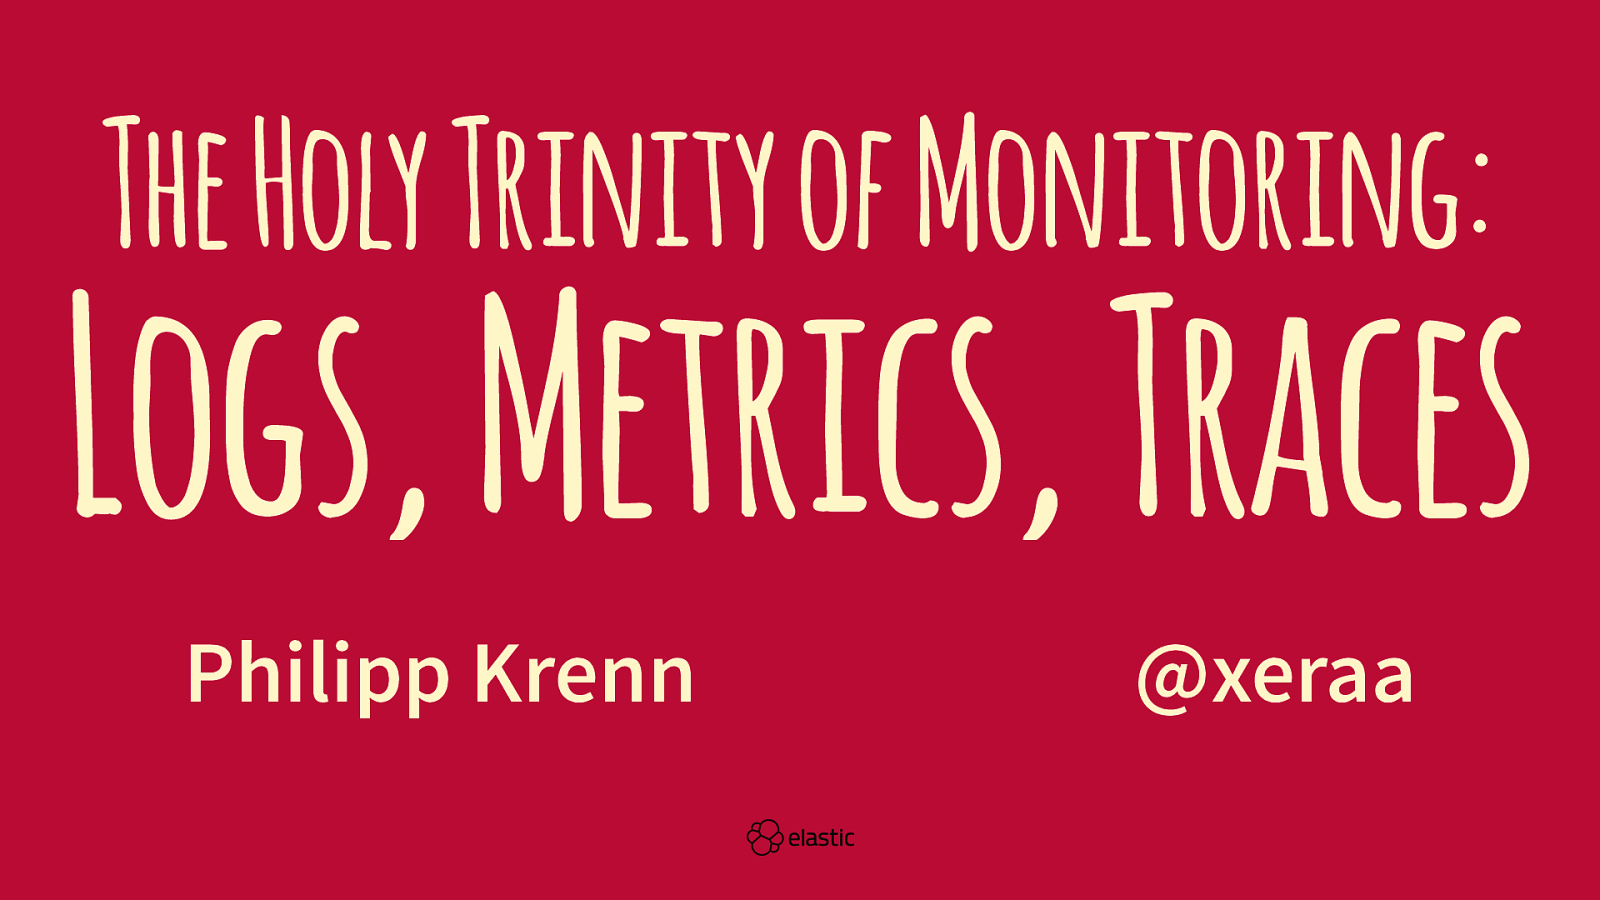 The Holy Trinity of Monitoring: Logs, Metrics, and Traces